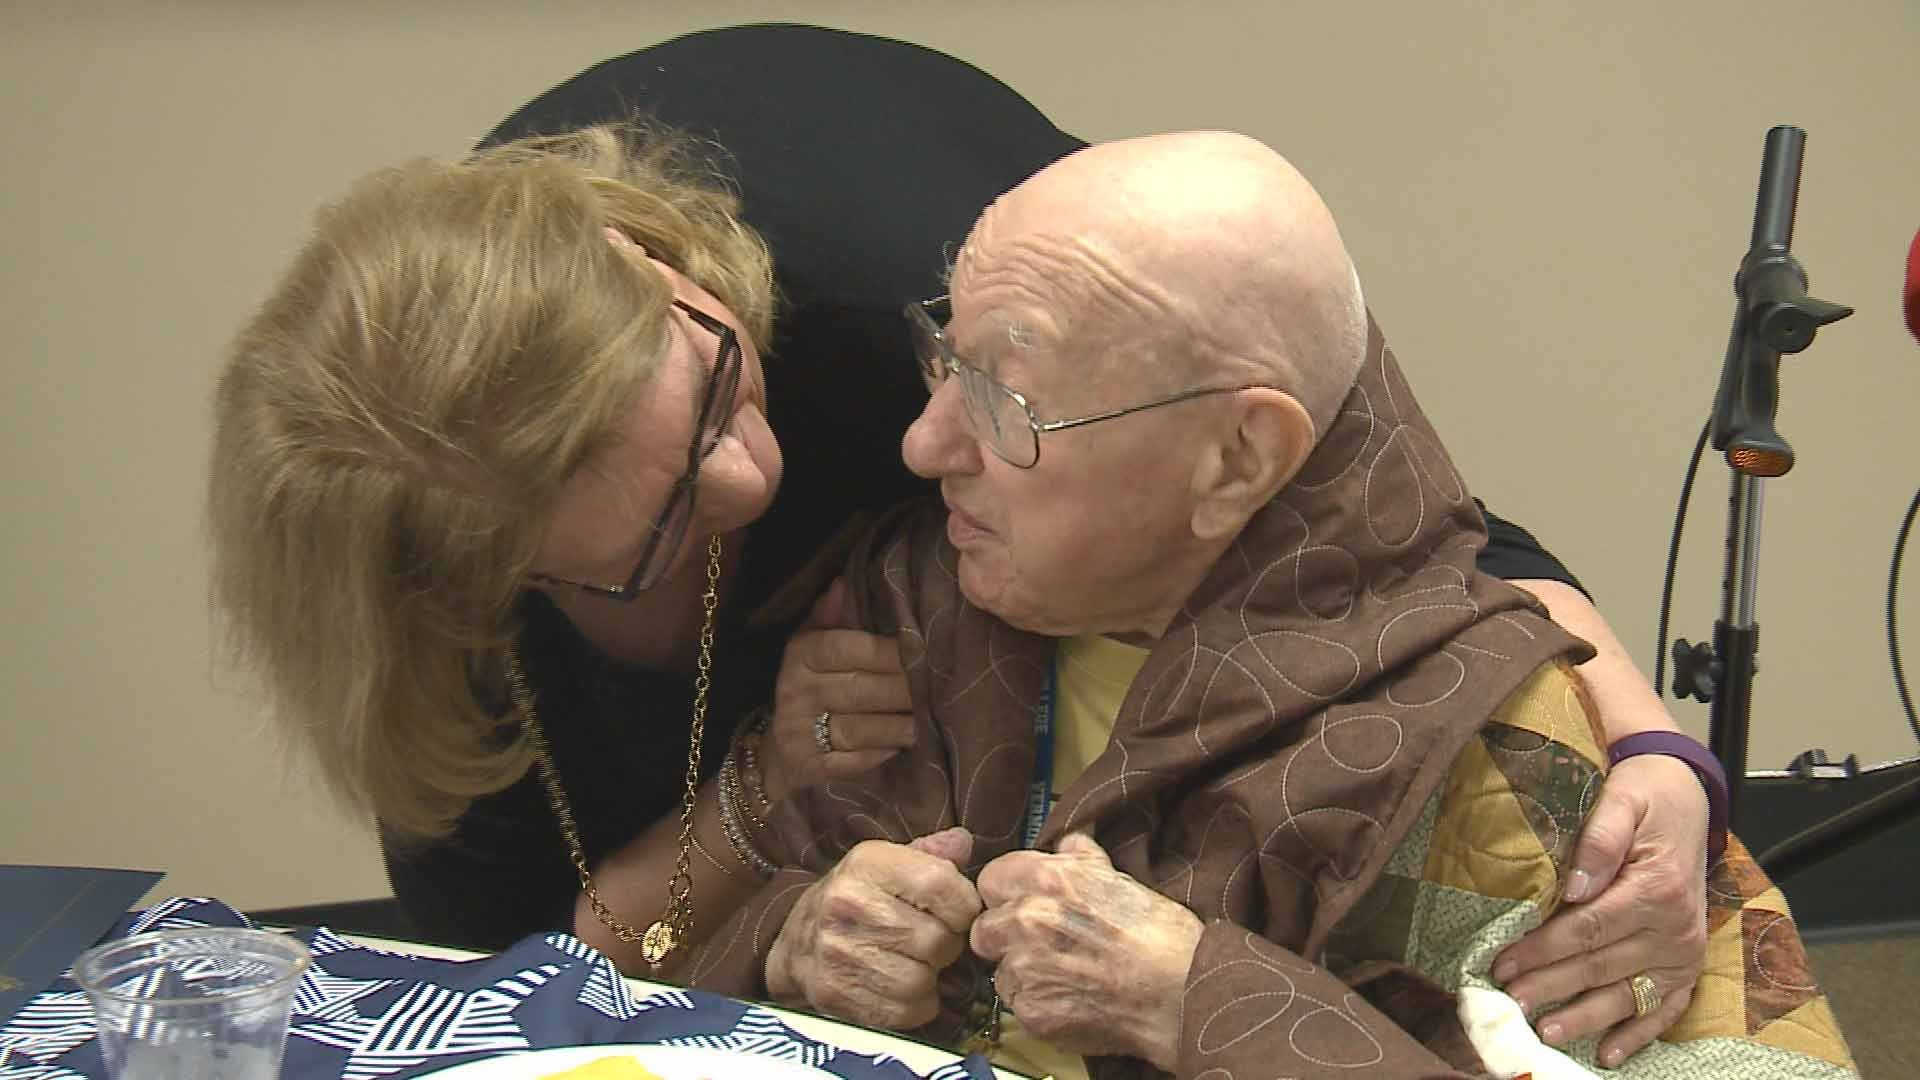 A quilt being presented to one of the veterans. Credit: KMOV